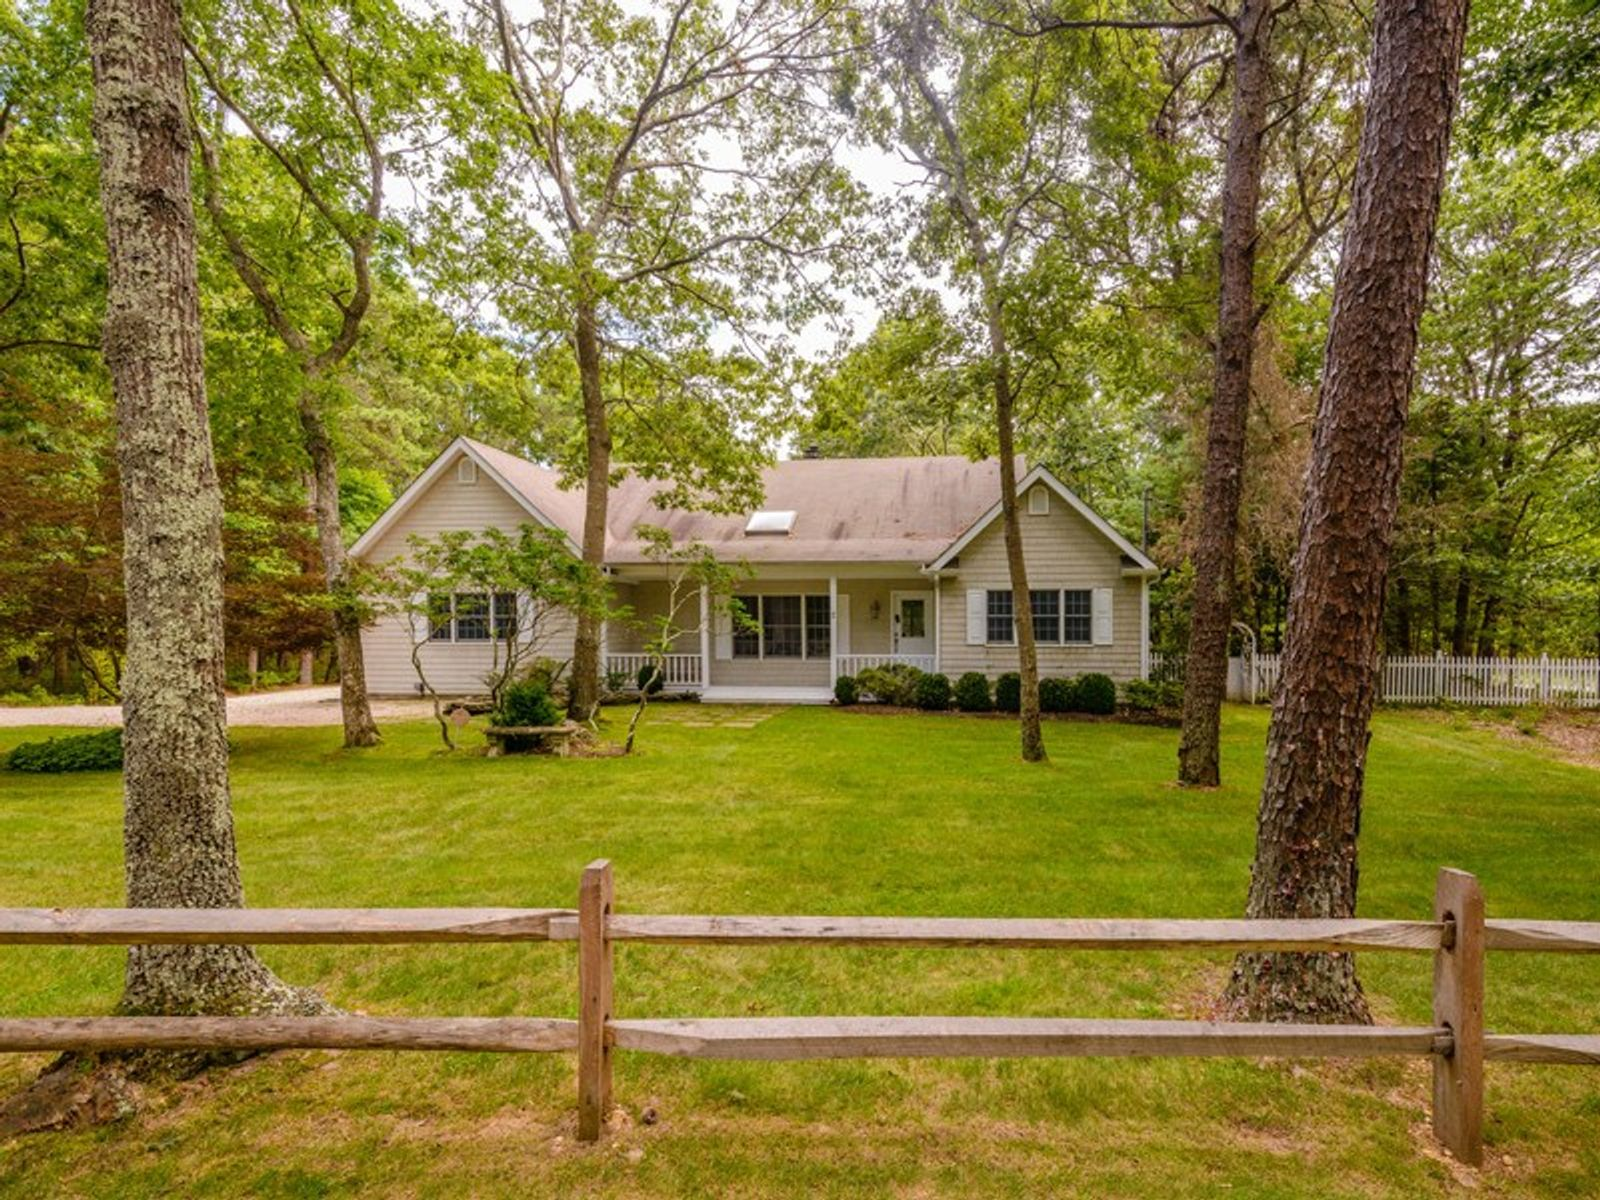 Perfect Country Cottage with Pool, East Hampton NY Single Family Home - Hamptons Real Estate